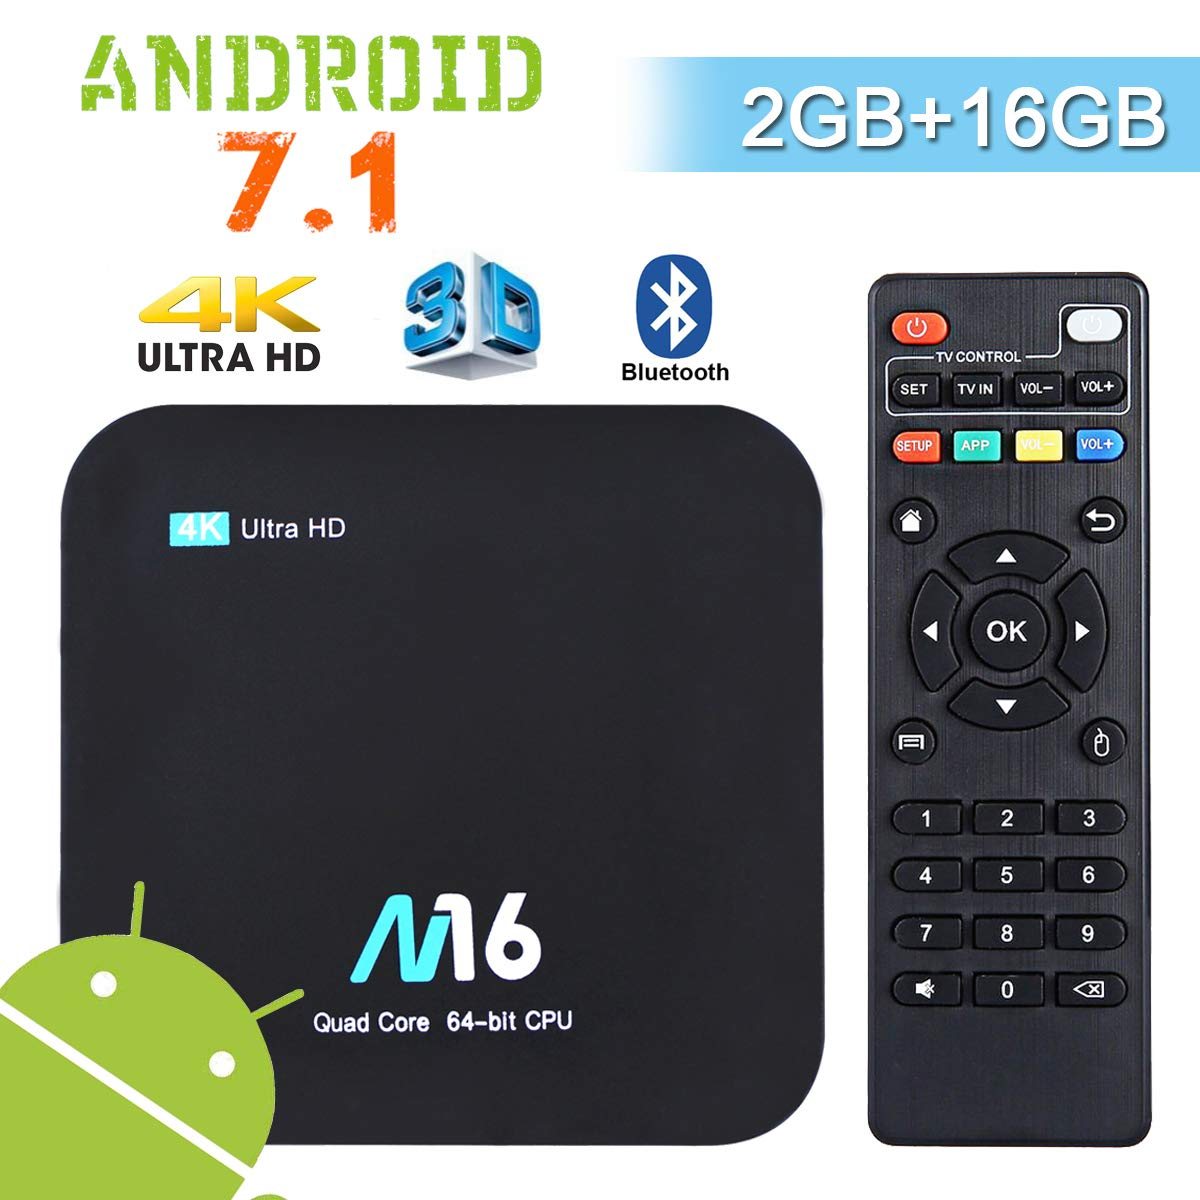 Android TV Box 4K - Wesho Android 7.1 Smart TV Box de 2GB RAM+16GB